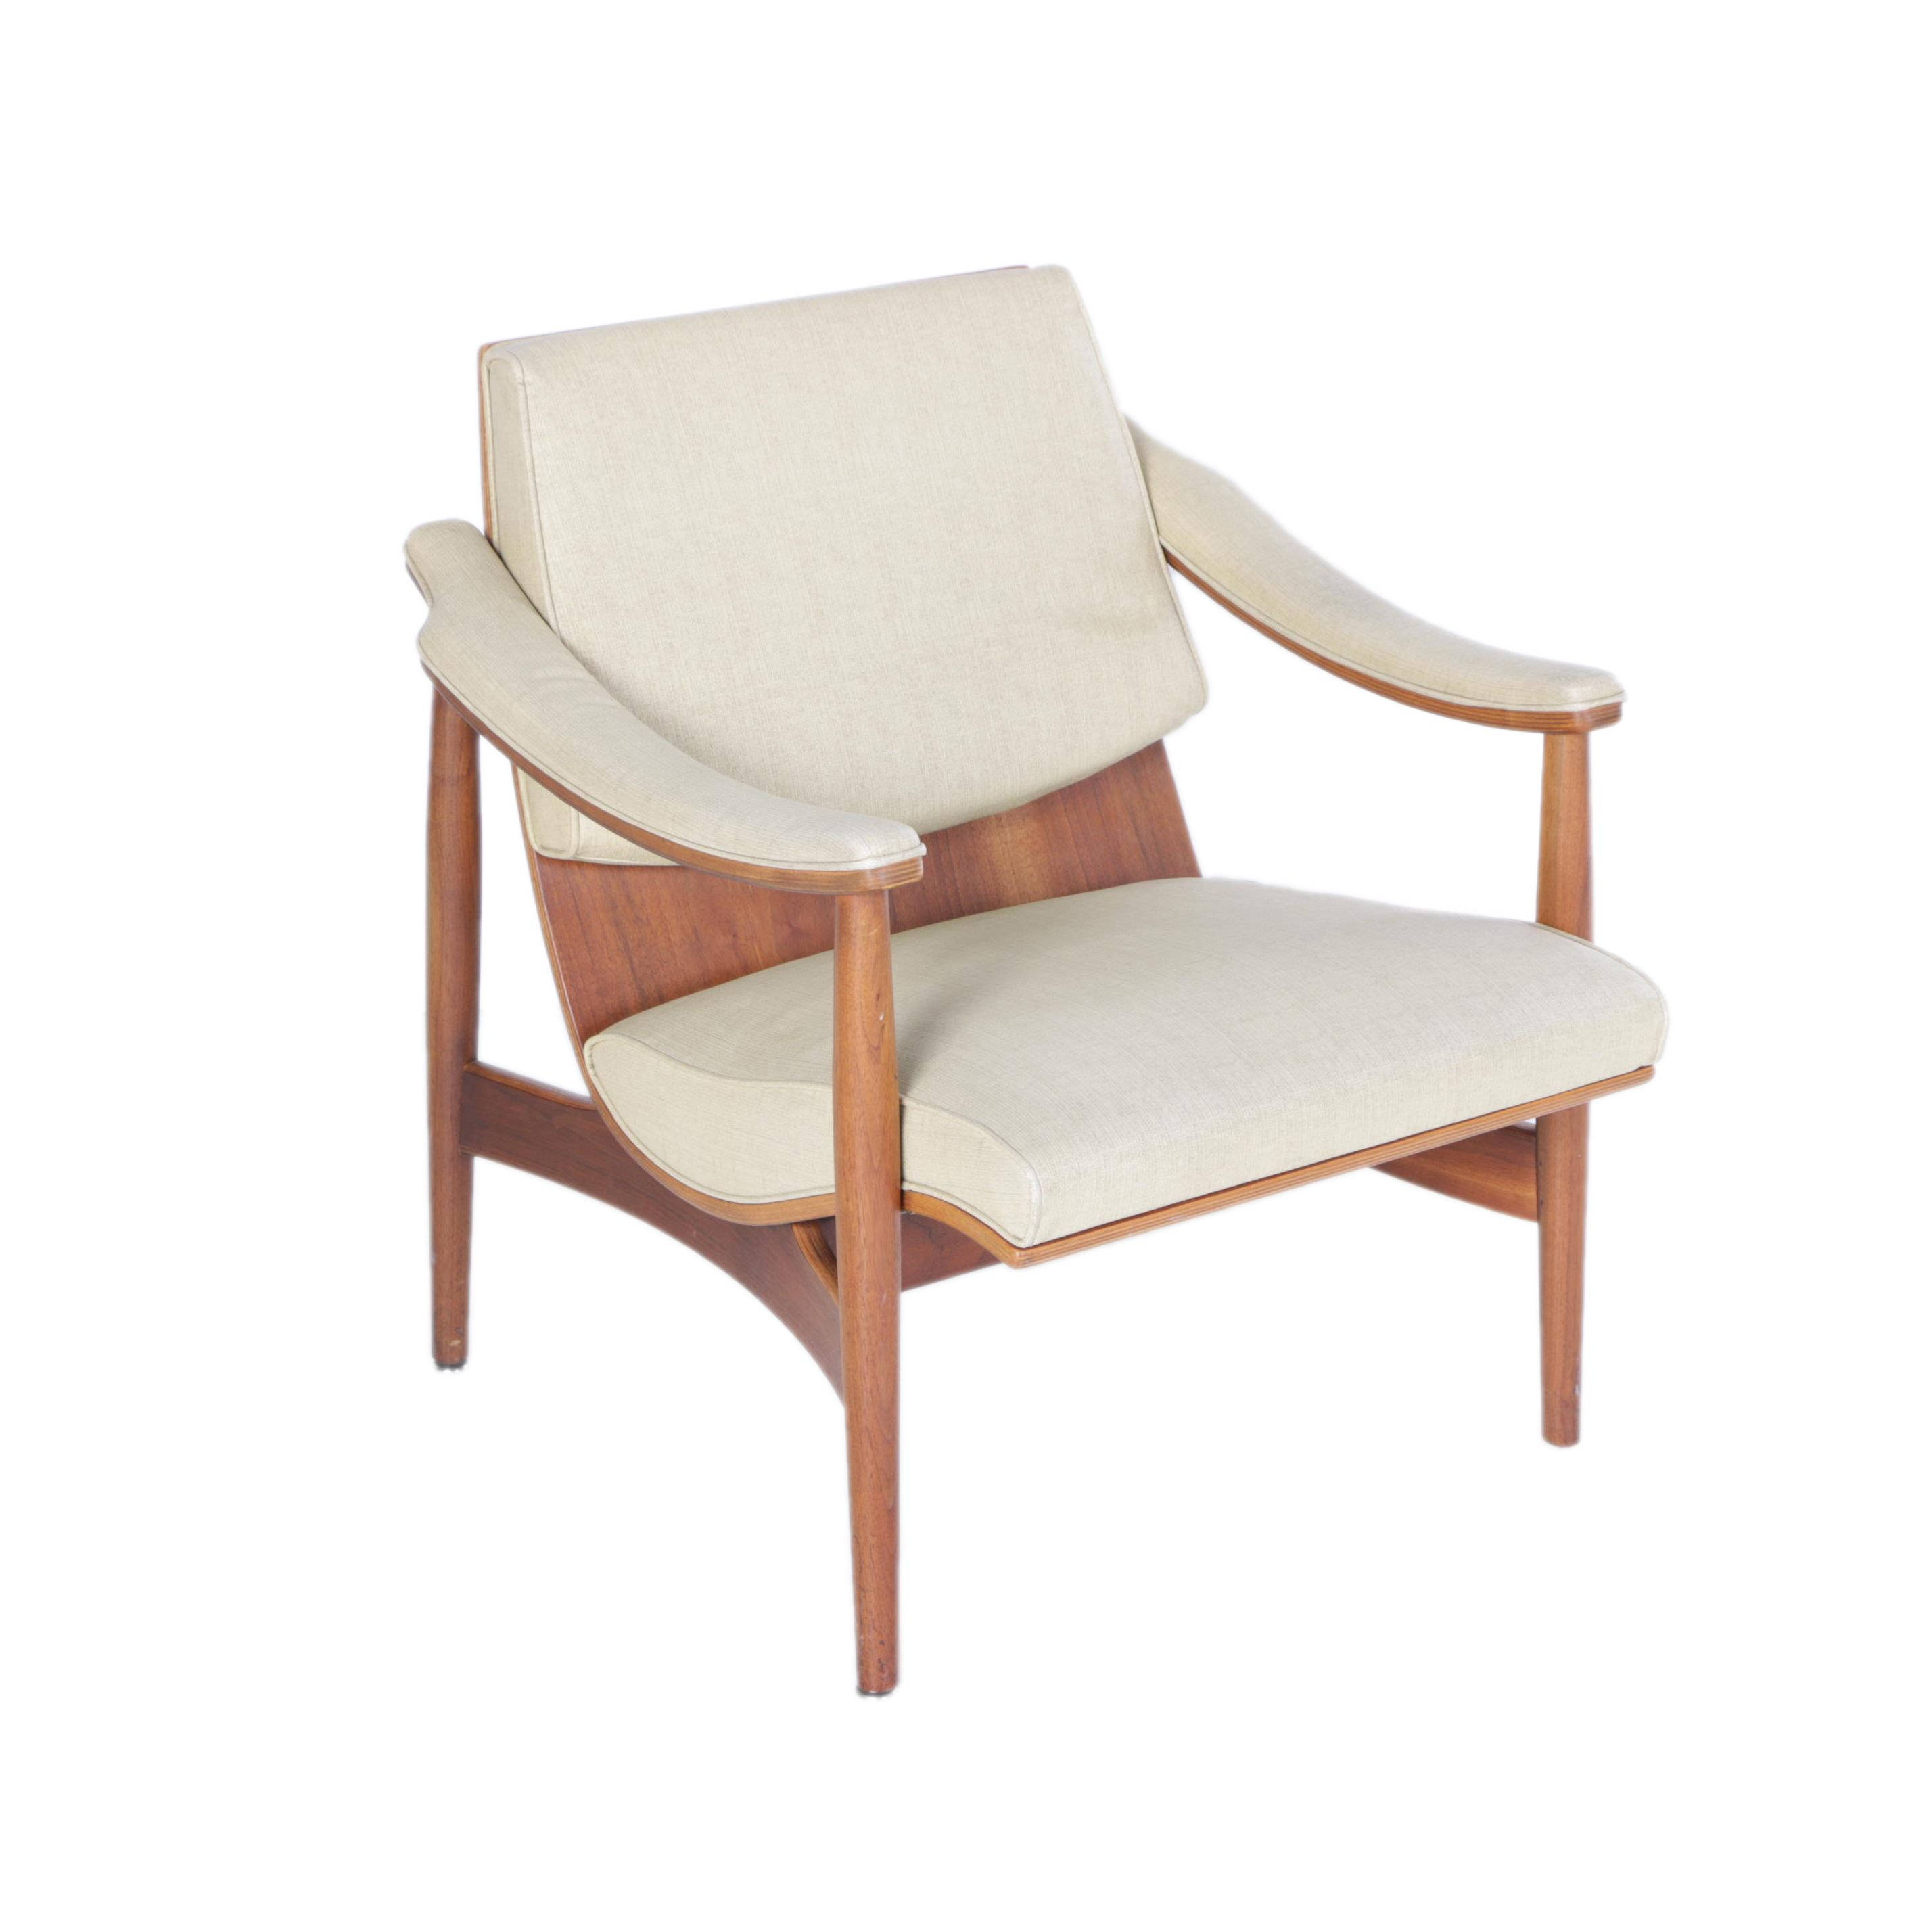 Vintage 1960s Mid Century Modern Thonet Walnut and Bentwood Lounge Chair